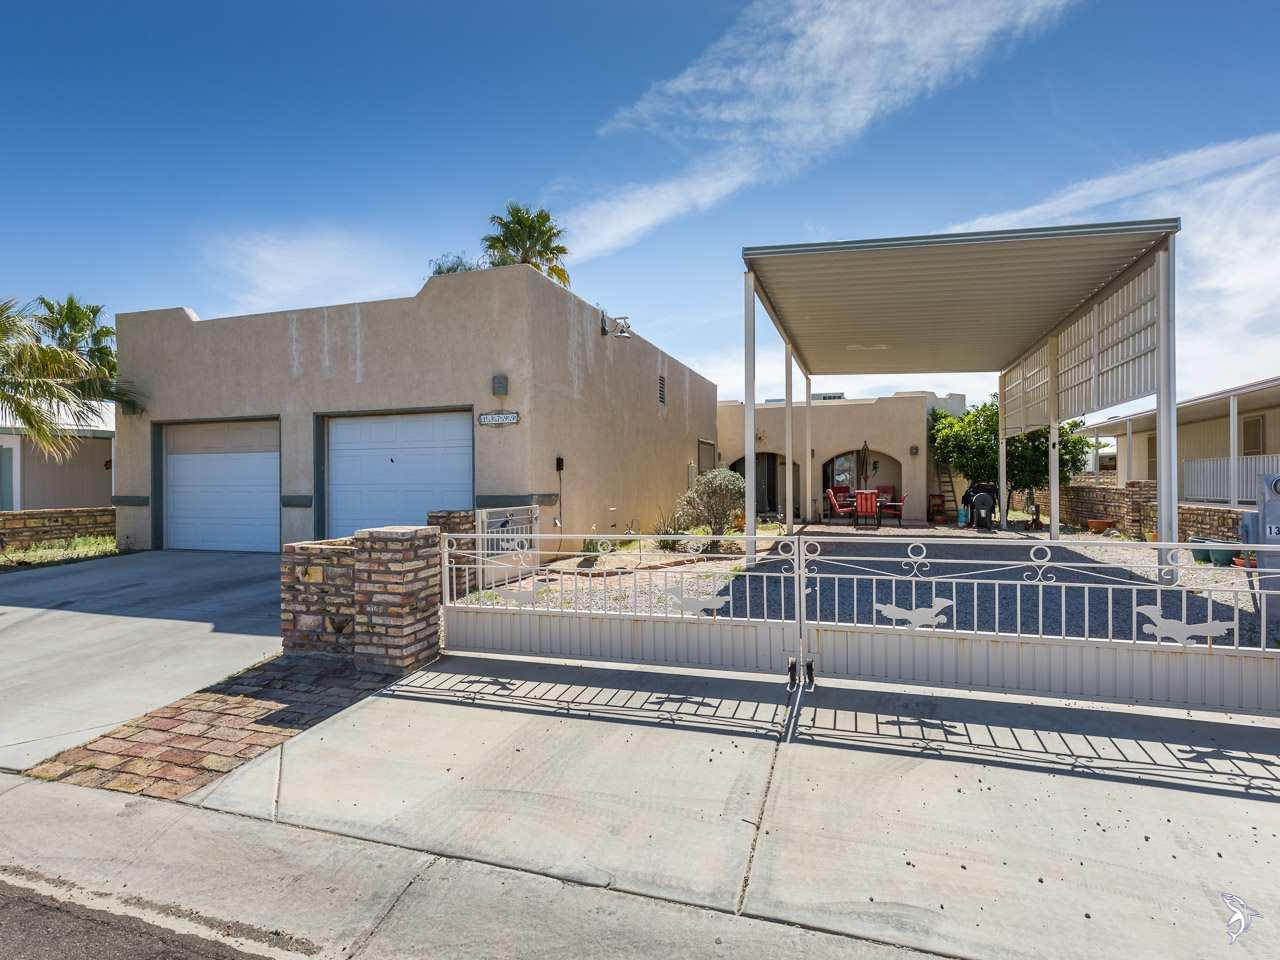 Property Image for 13799 E 51 St